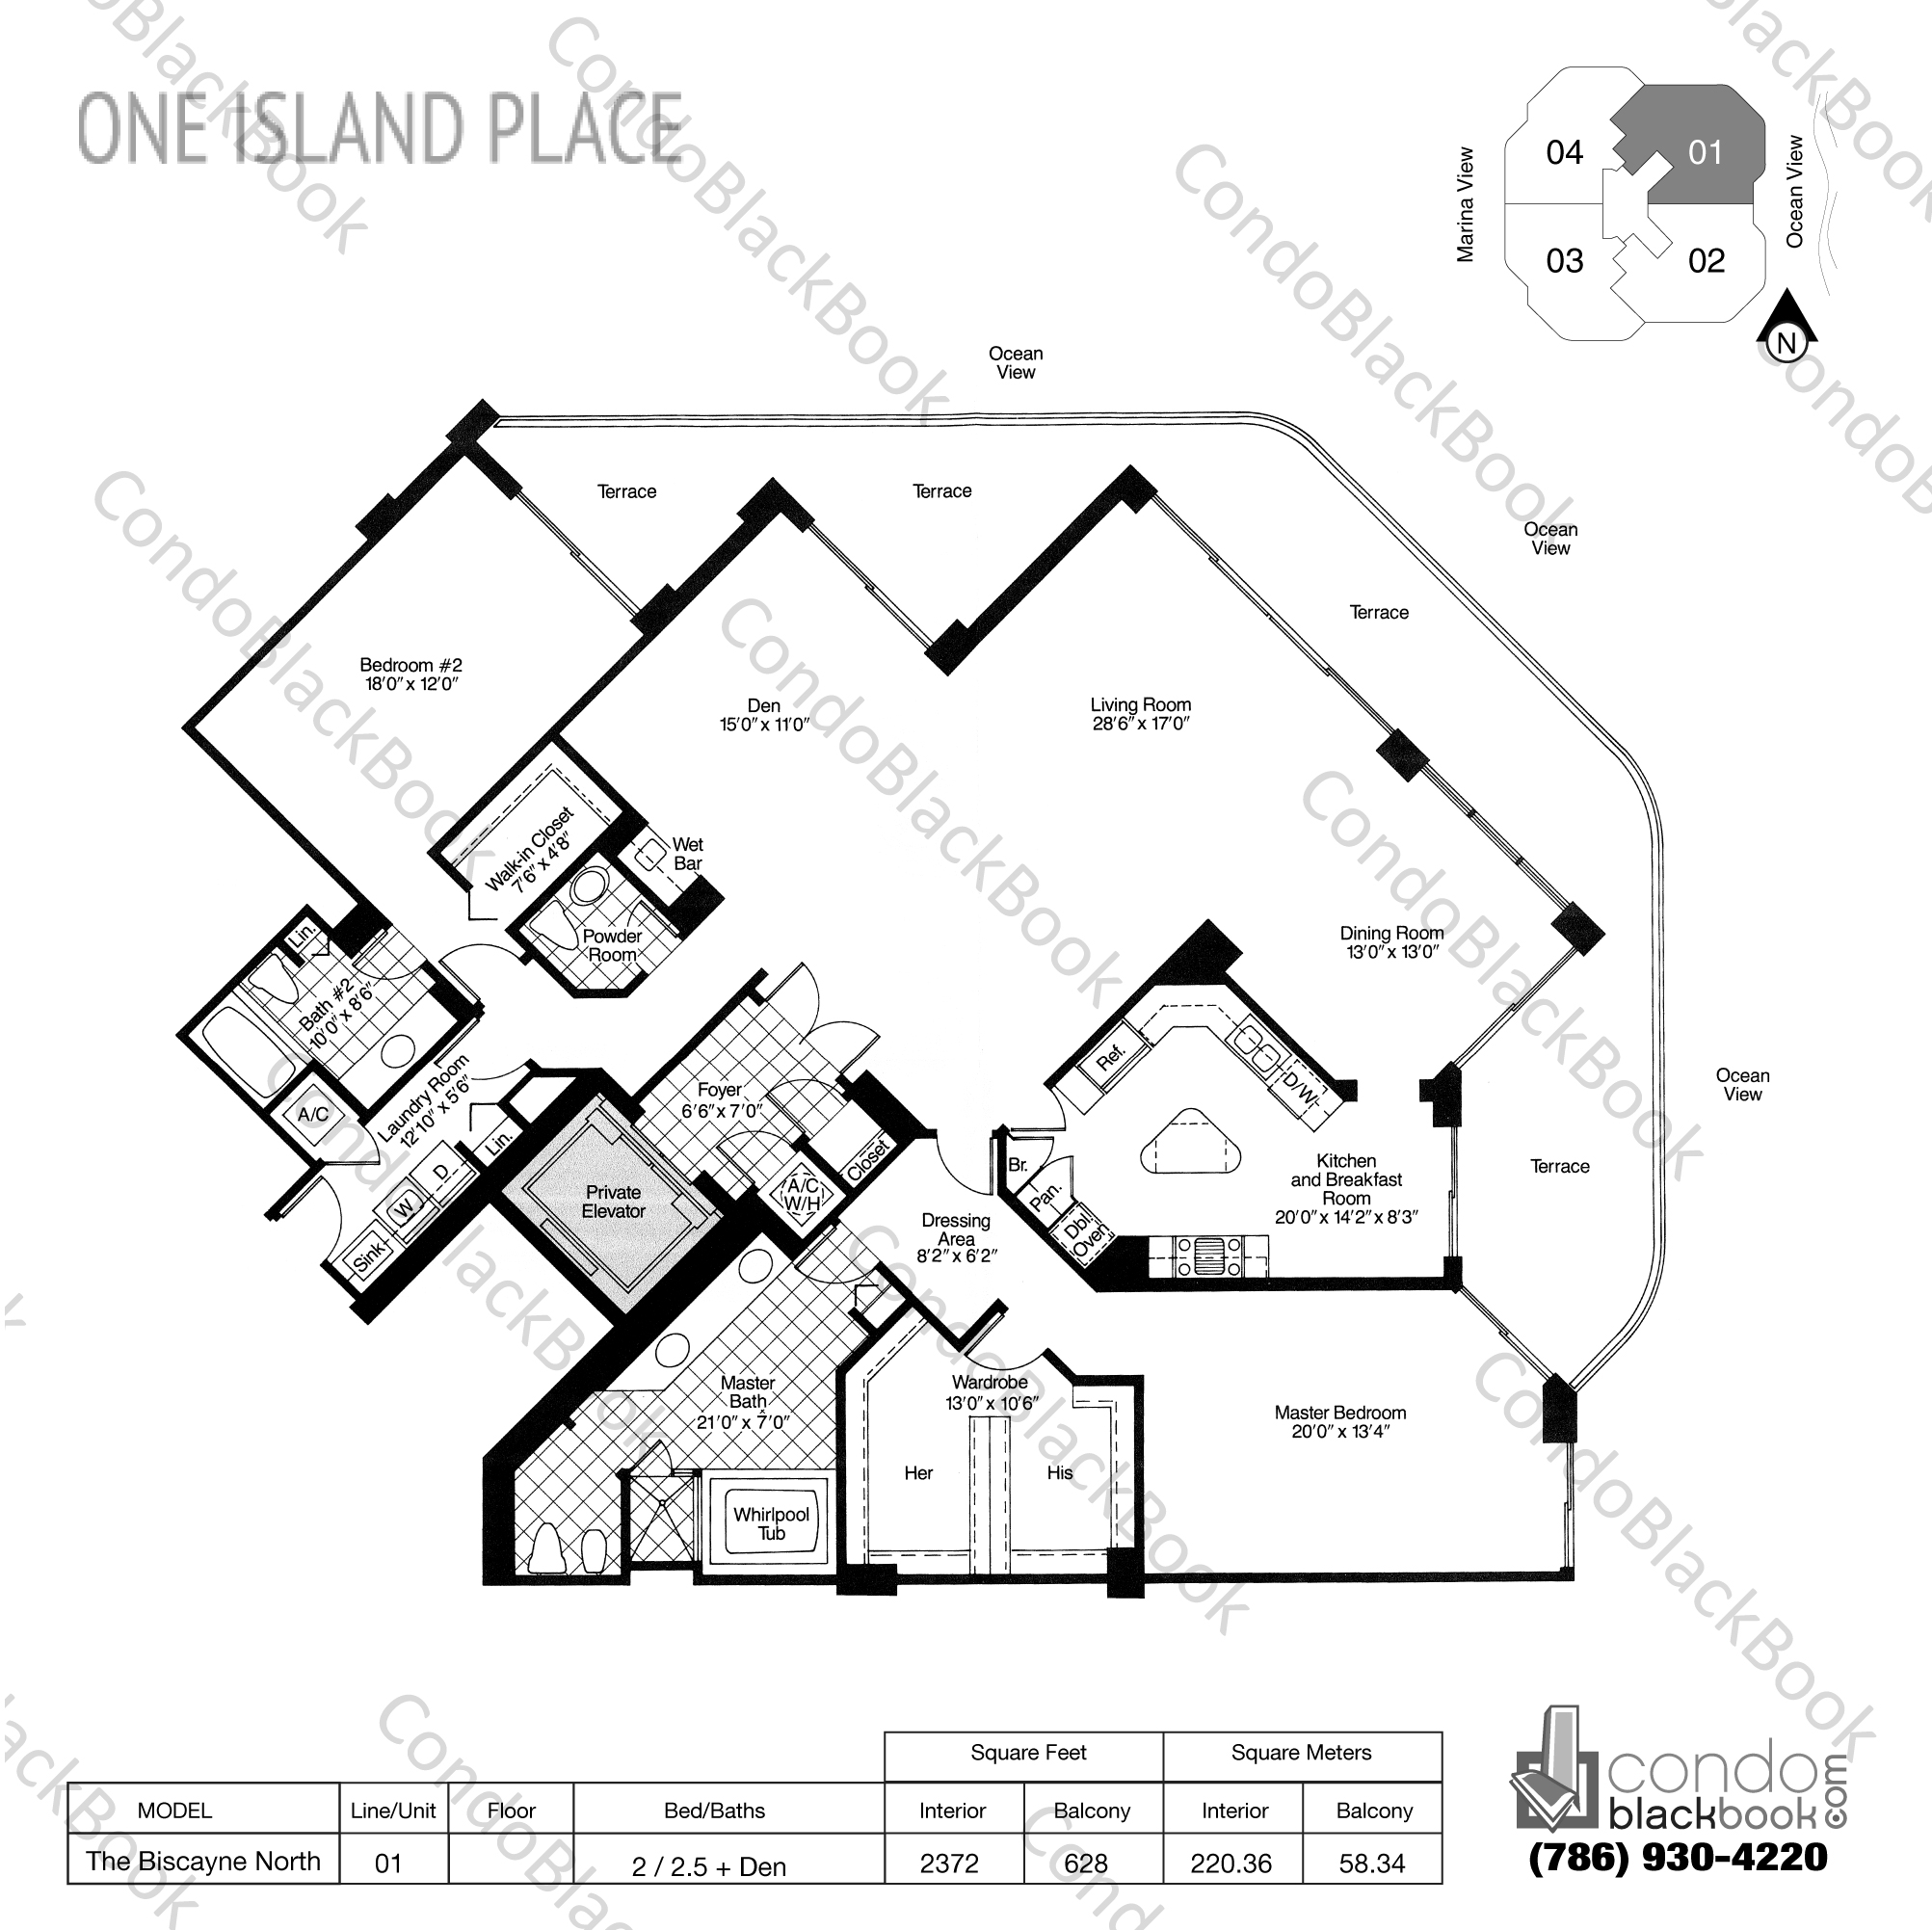 Floor plan for One Island Place Aventura, model The Biscayne North, line 01, 2 / 2.5 + Den bedrooms, 2372 sq ft